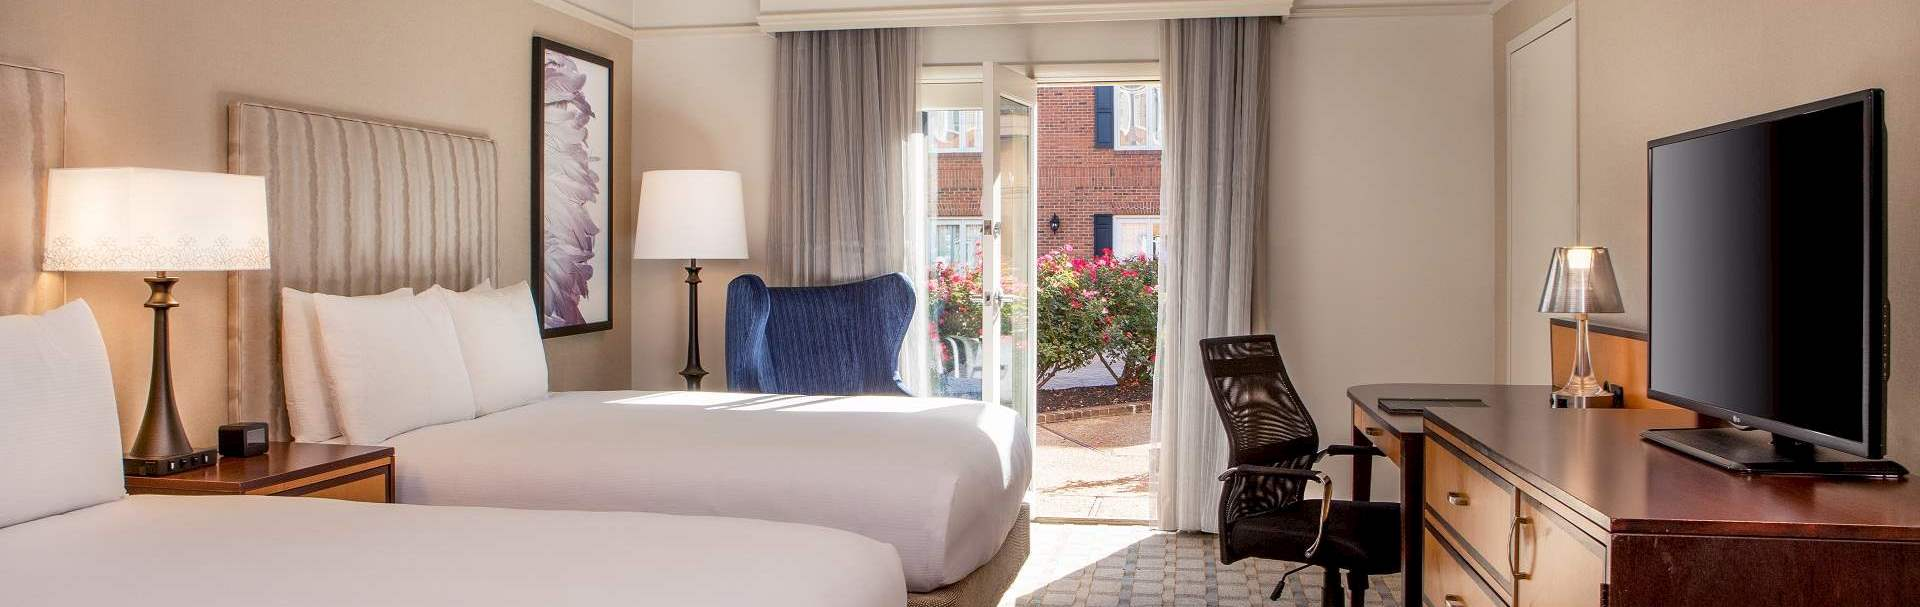 Rooms at Hilton Wilmington/Christiana Newark, Delaware